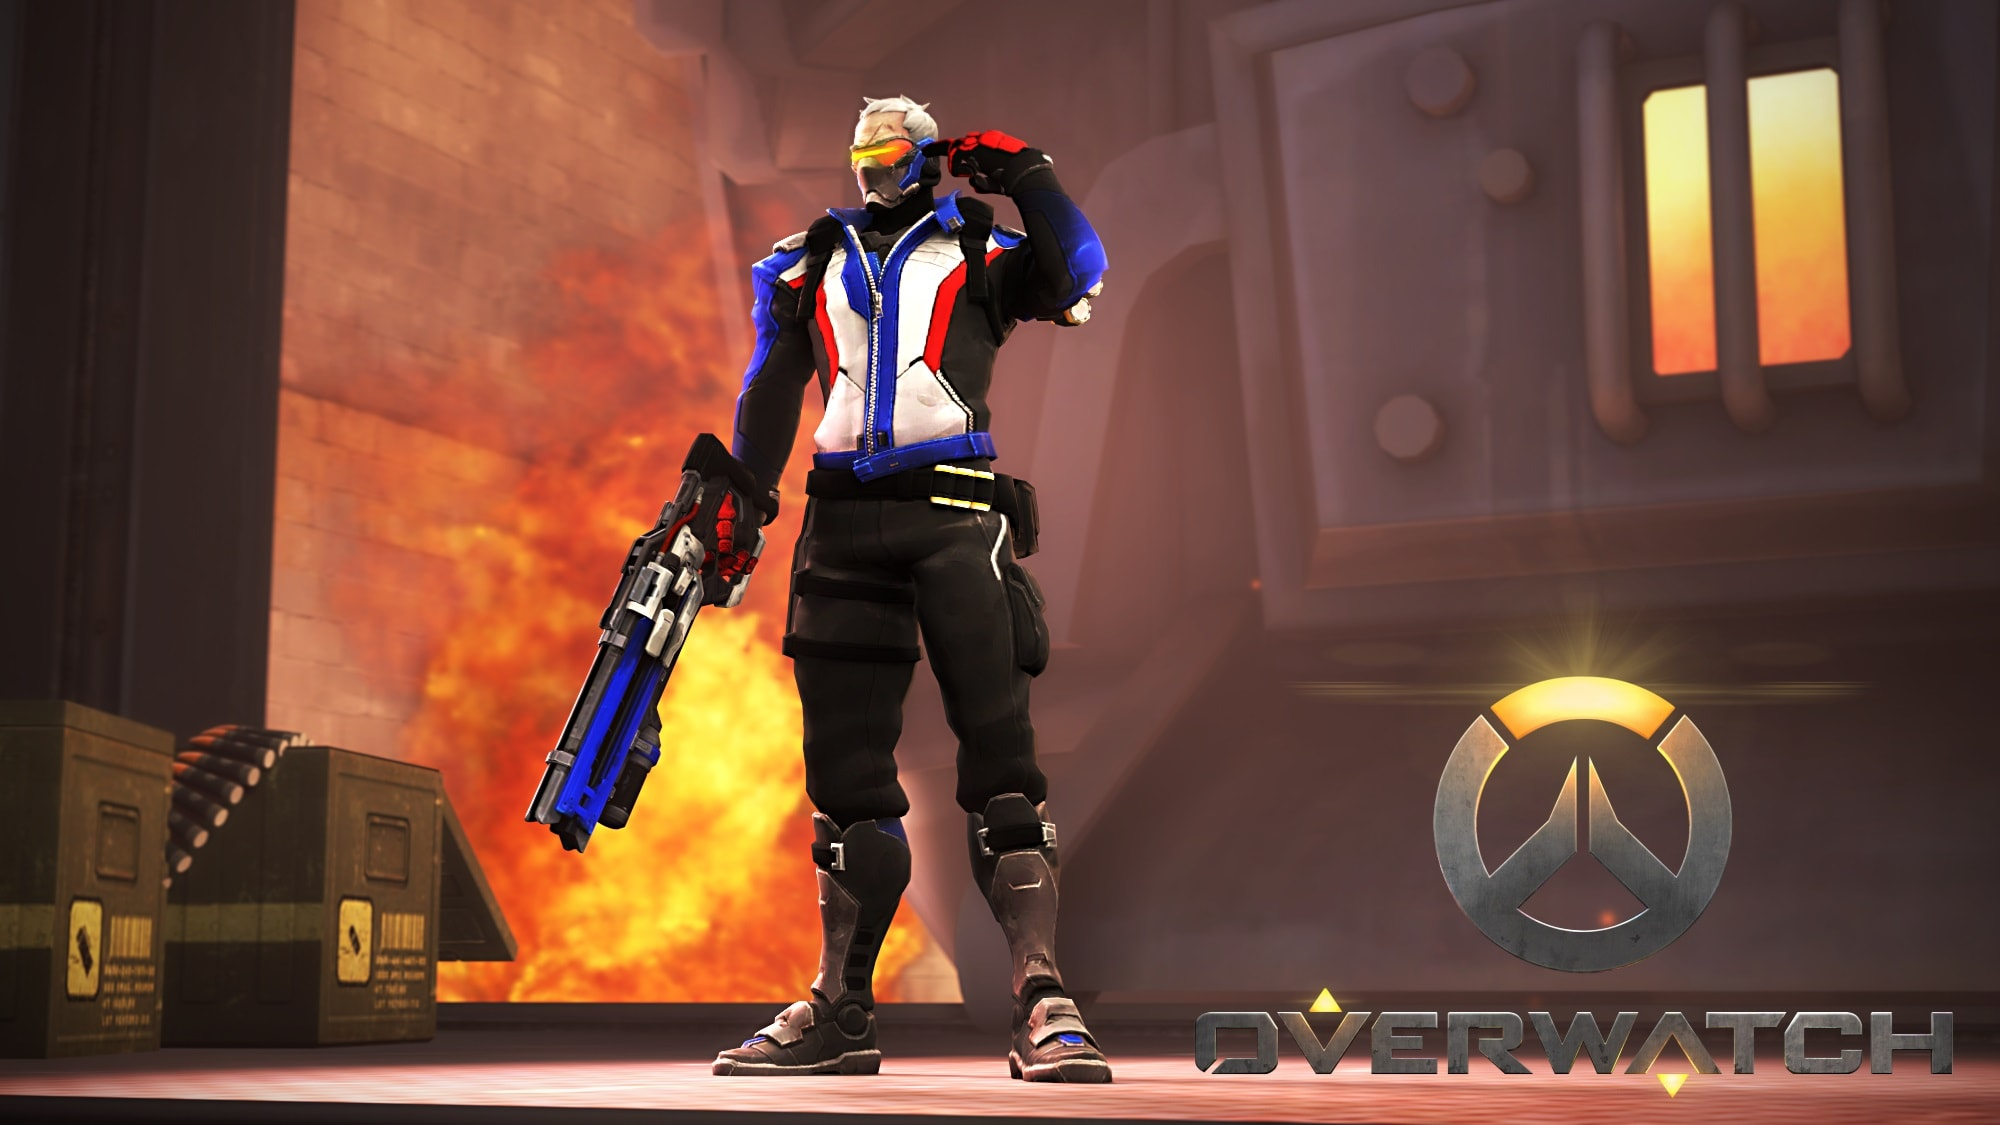 soldier 76 wallpaper - photo #22